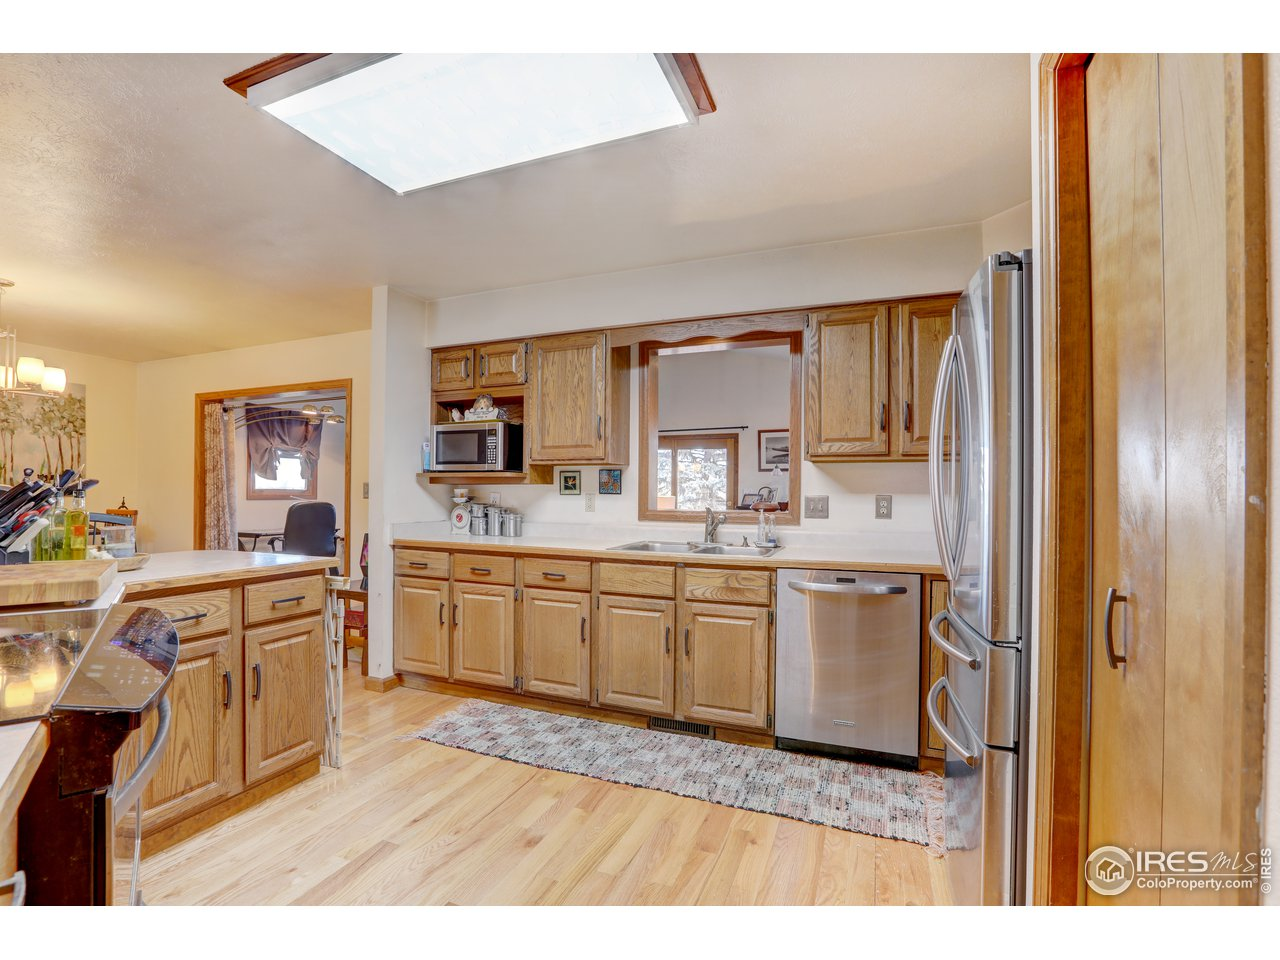 Open kitchen with stainless steel appliances.